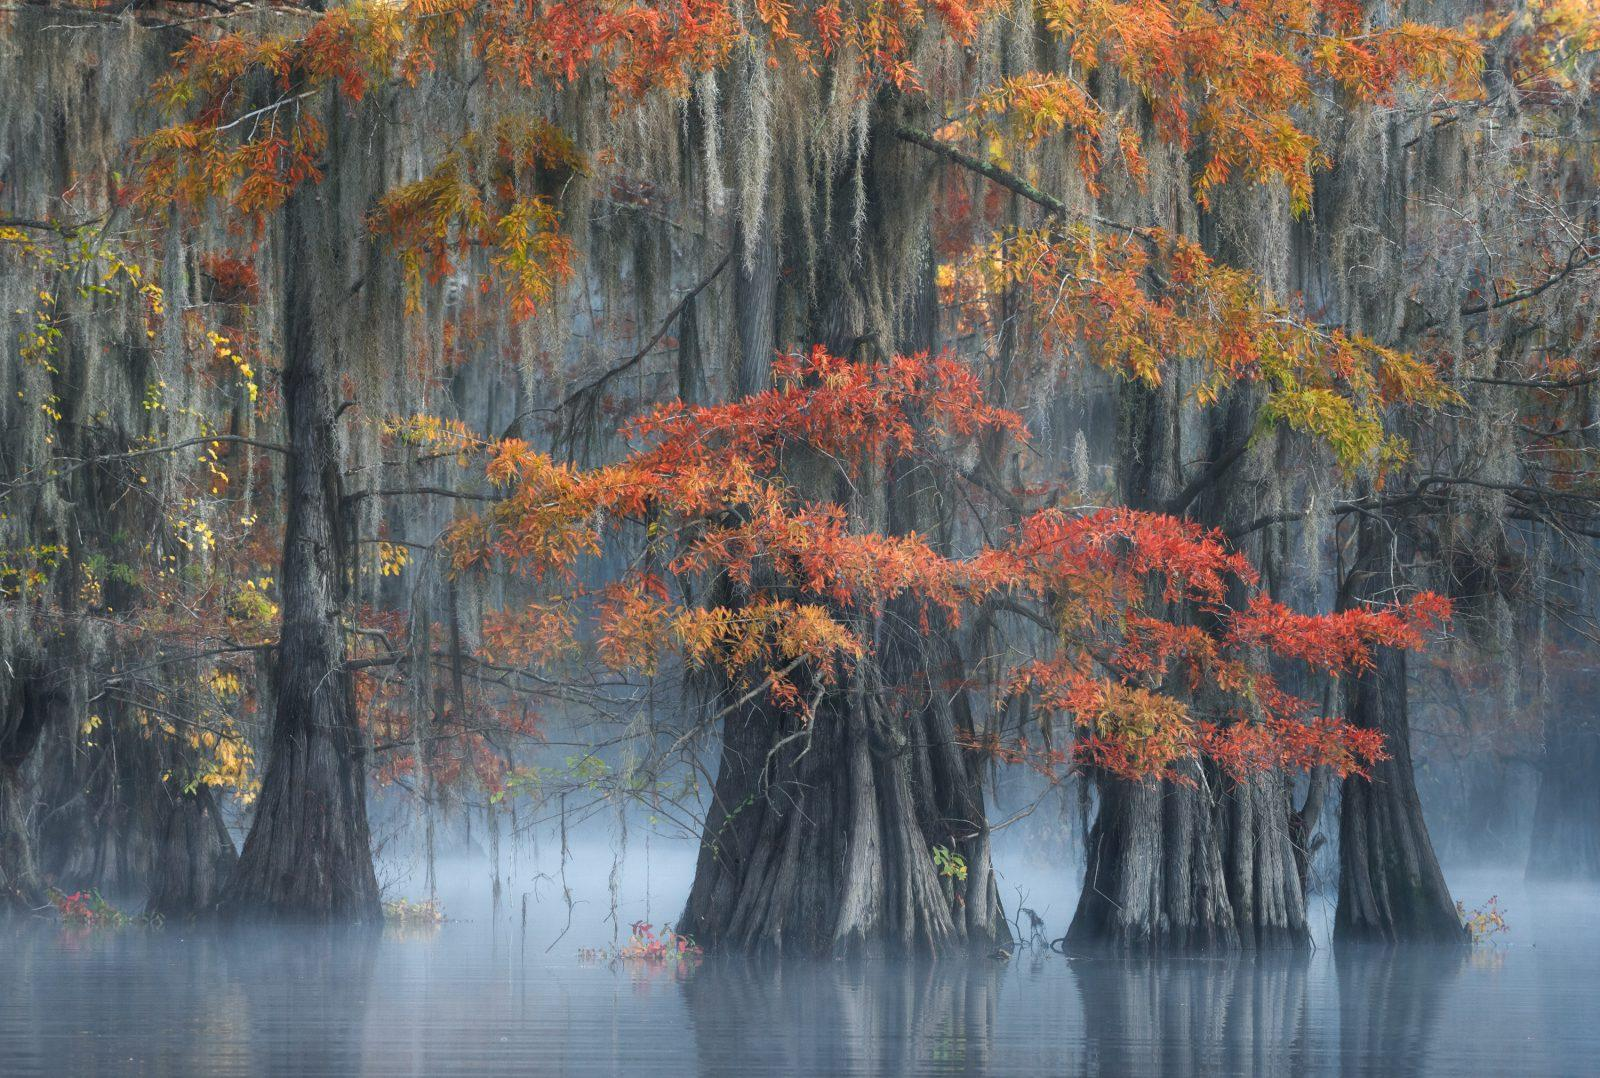 Fall Morning in the Swamp